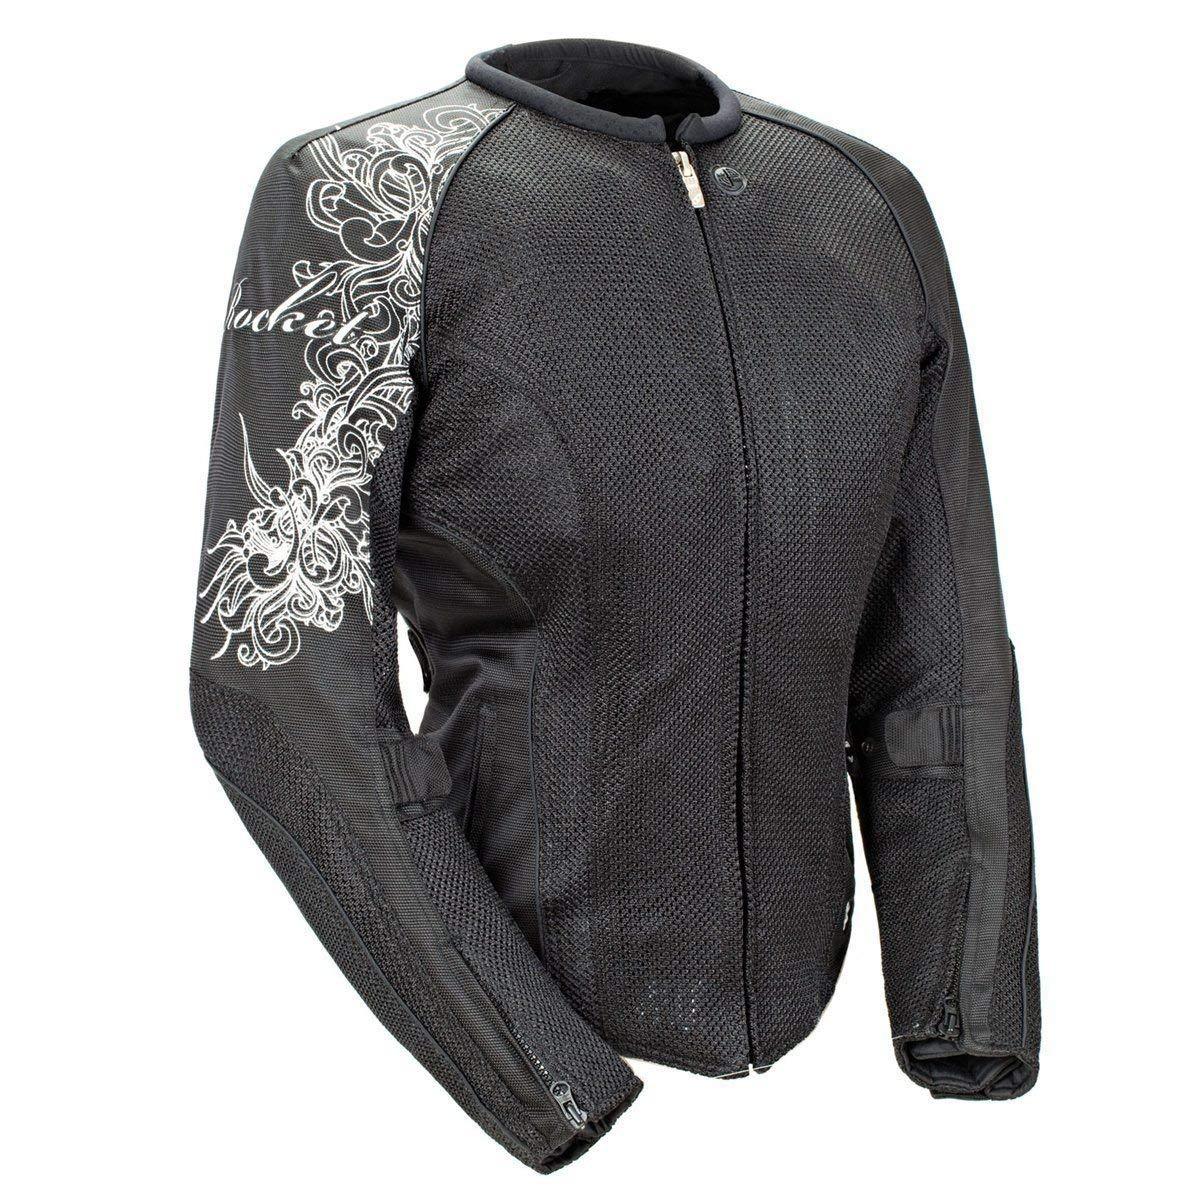 Joe Rocket 'Cleo 2.2' Womens Black Mesh Motorcycle Jacket - Medium